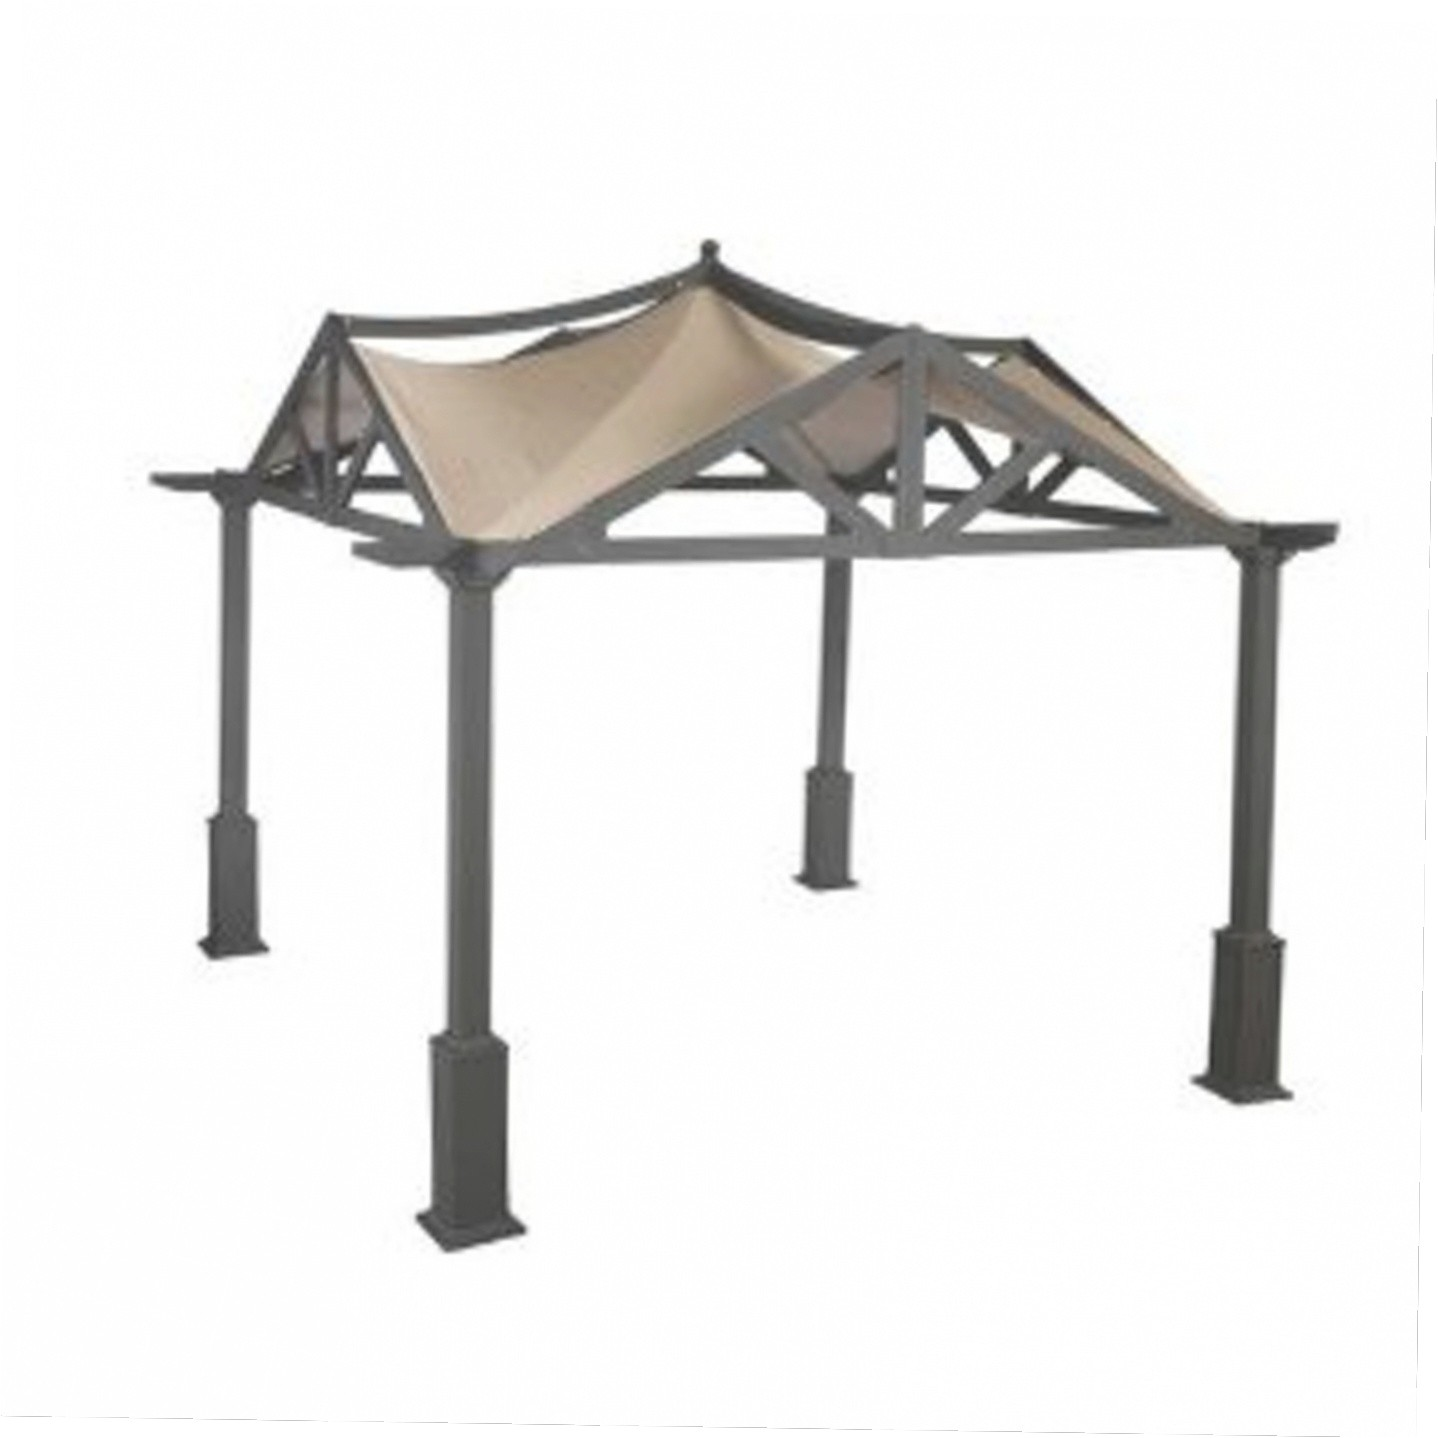 Allen Roth Hardtop Gazebo Replacement Parts Allen Roth Gazebo Replacement Parts Gazebo Ideas